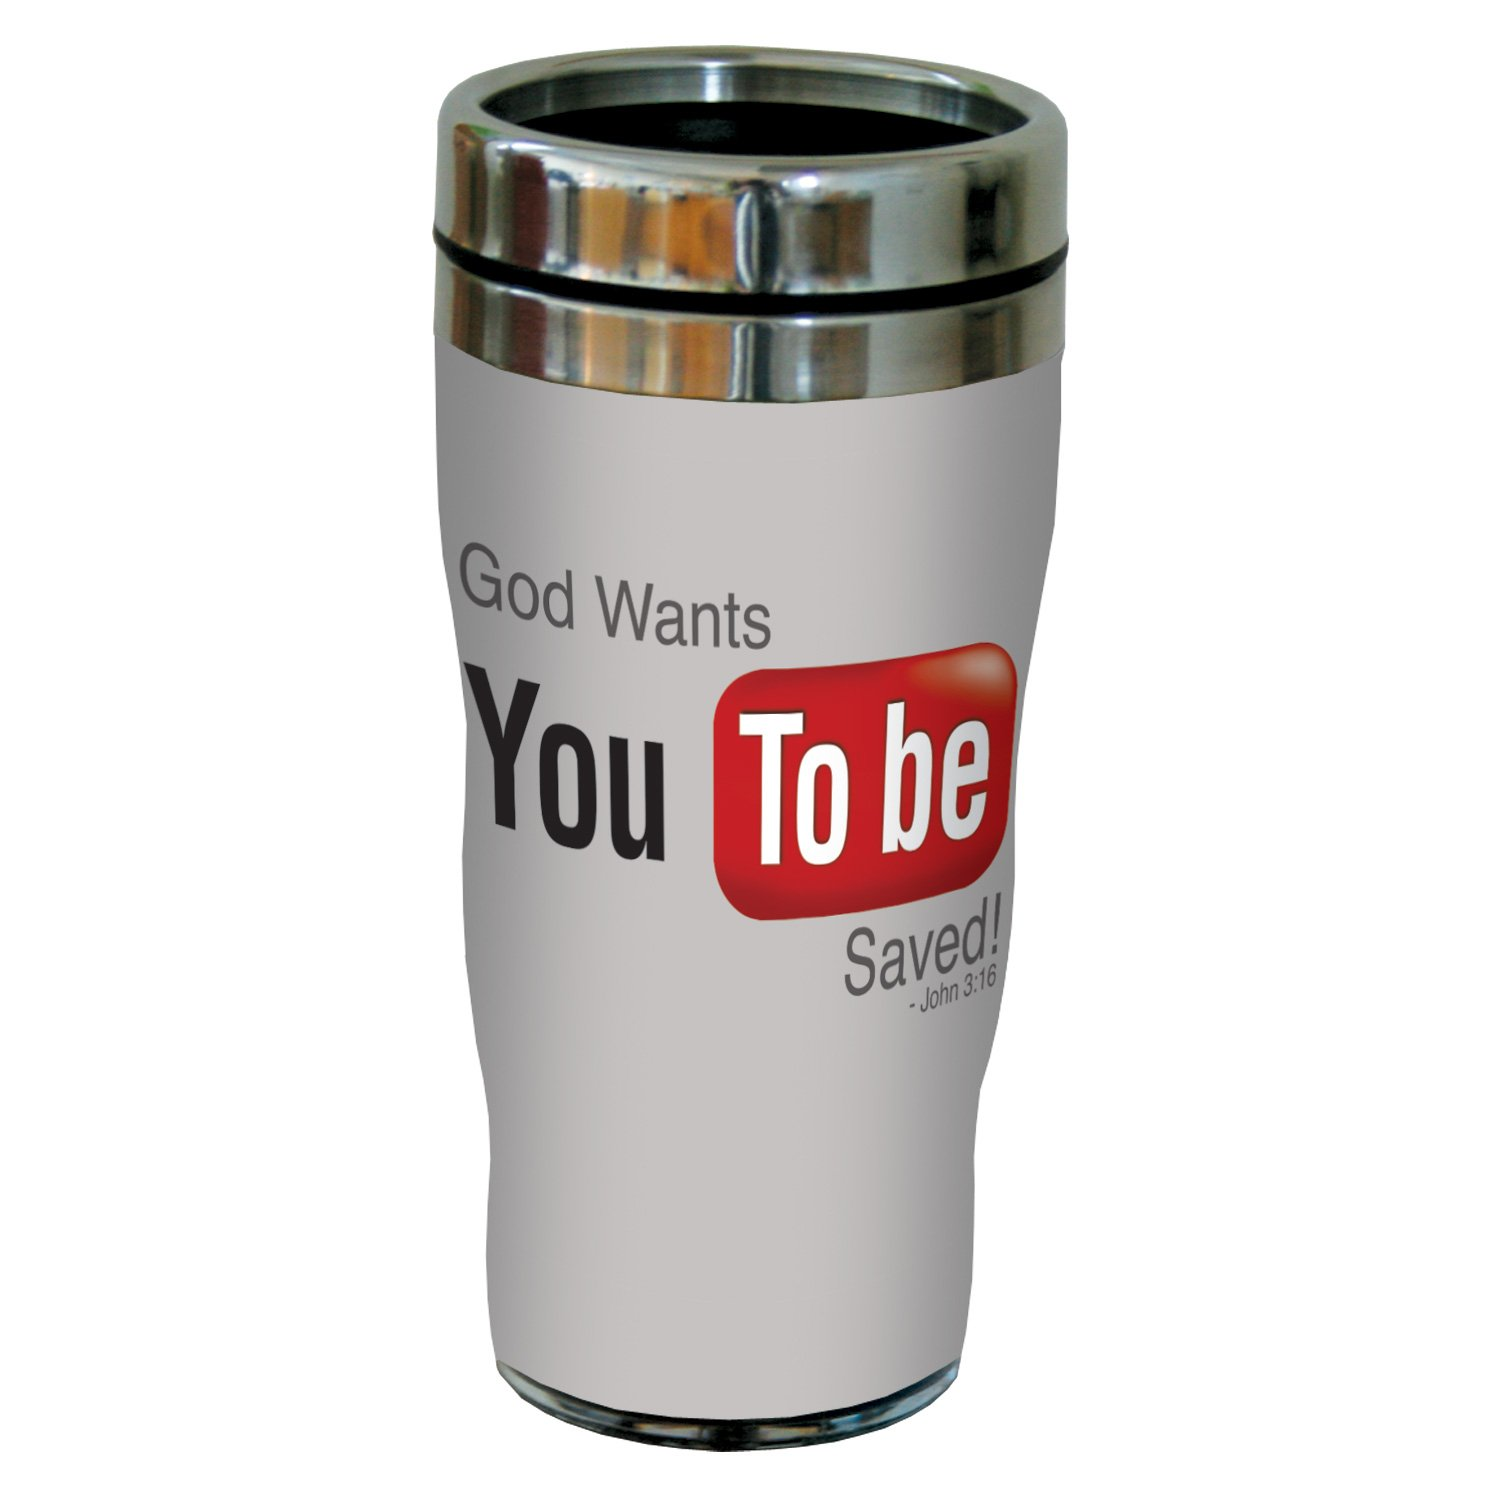 Tree-Free Greetings sg24366 YouTube-You to be Saved: John 3:16 Sip 'N Go Stainless Steel Lined Travel Tumbler, 16-Ounce